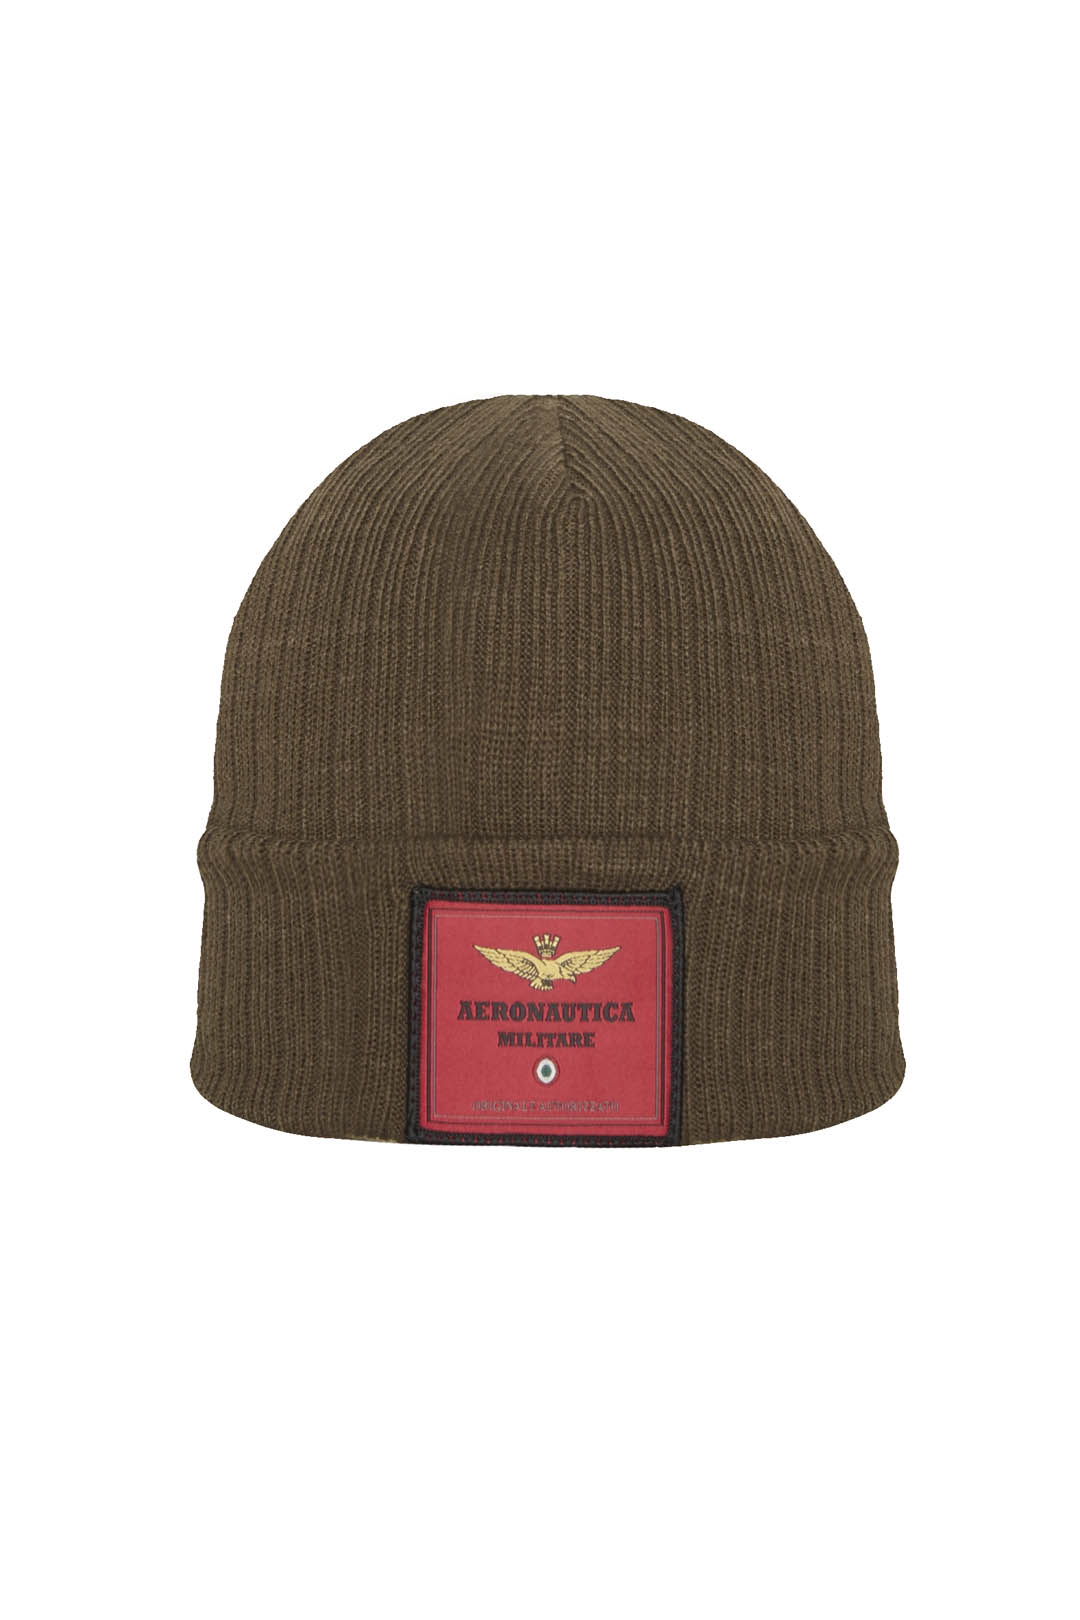 Knit cap with contrast logo label